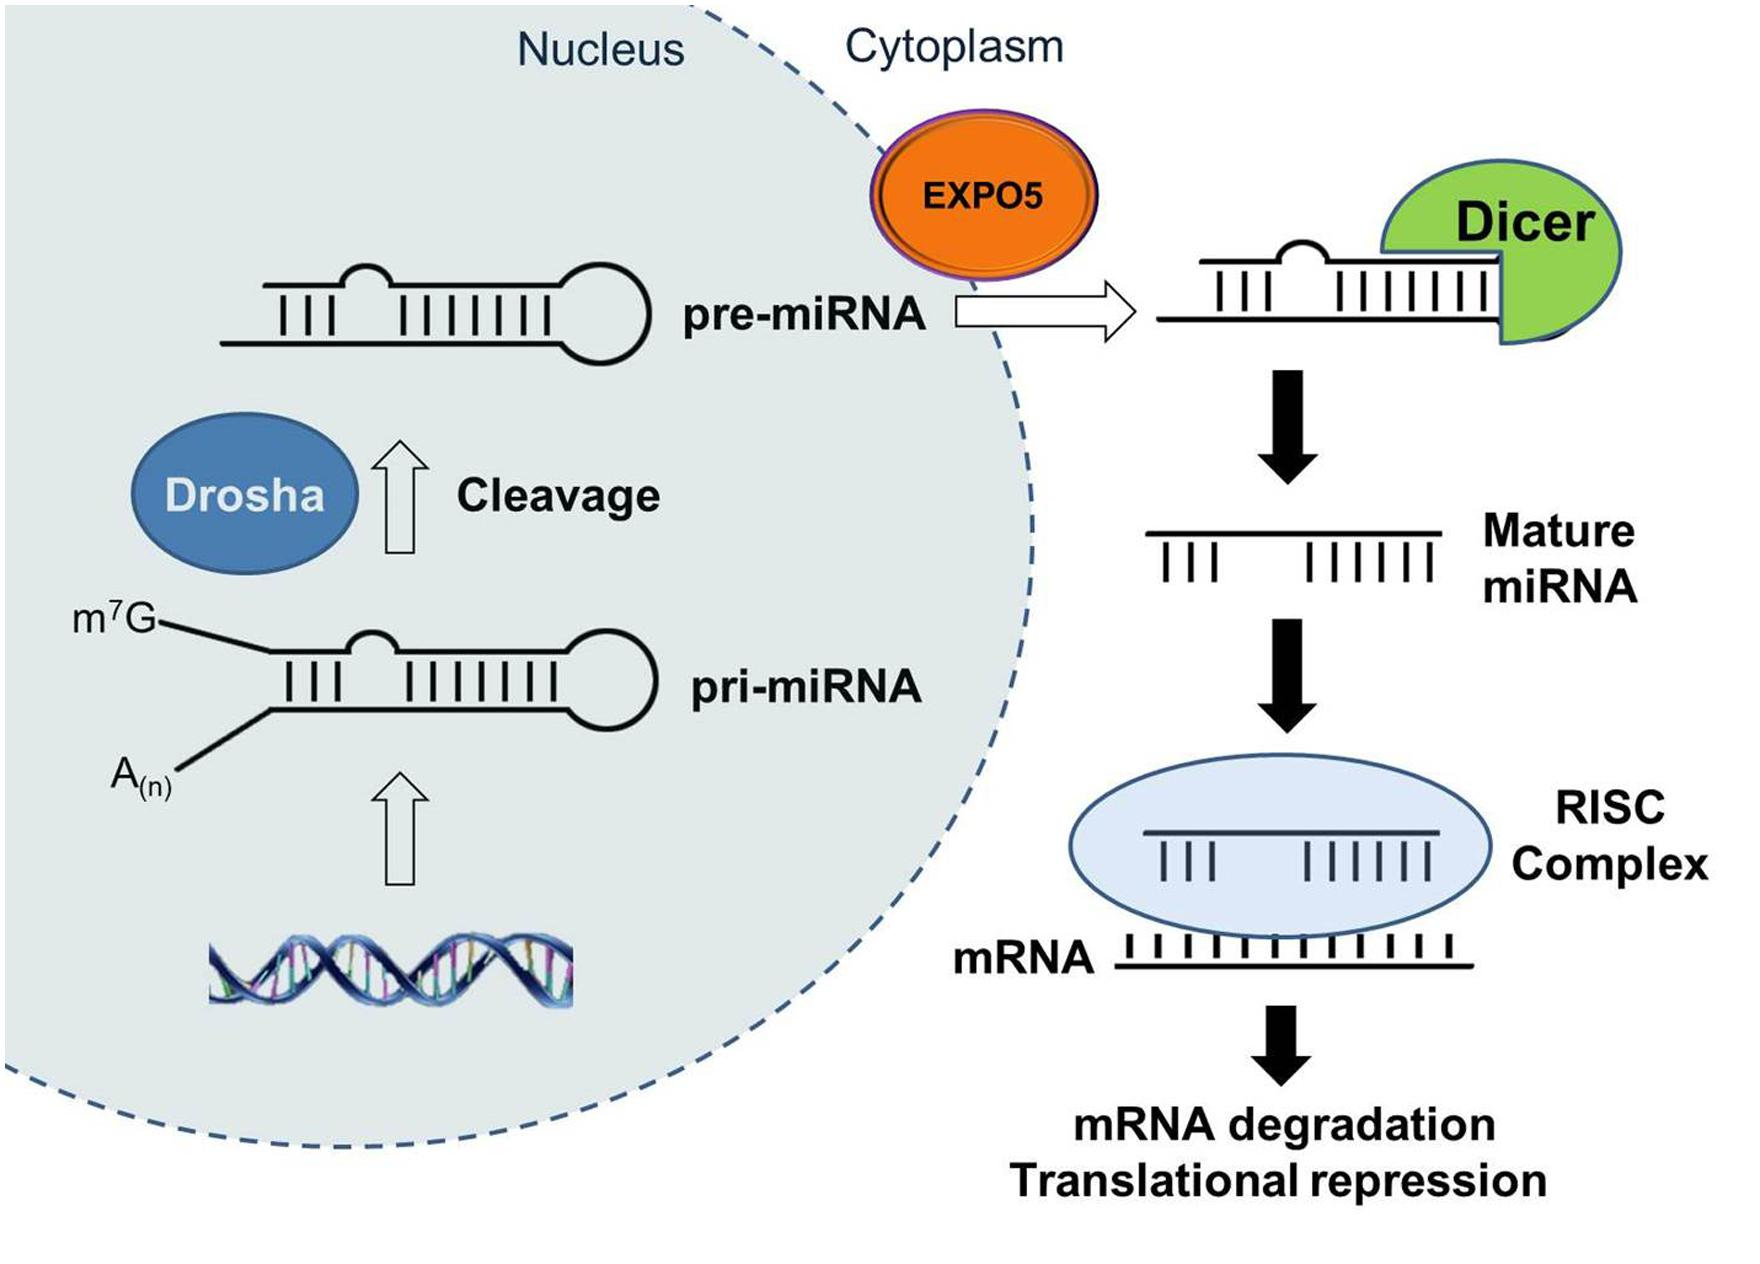 gene systhesis Deoxyribonucleic acid (dna) synthesis is a process by which copies of nucleic acid strands are made in nature, dna synthesis takes place in cells by a mechanism known as dna replication.